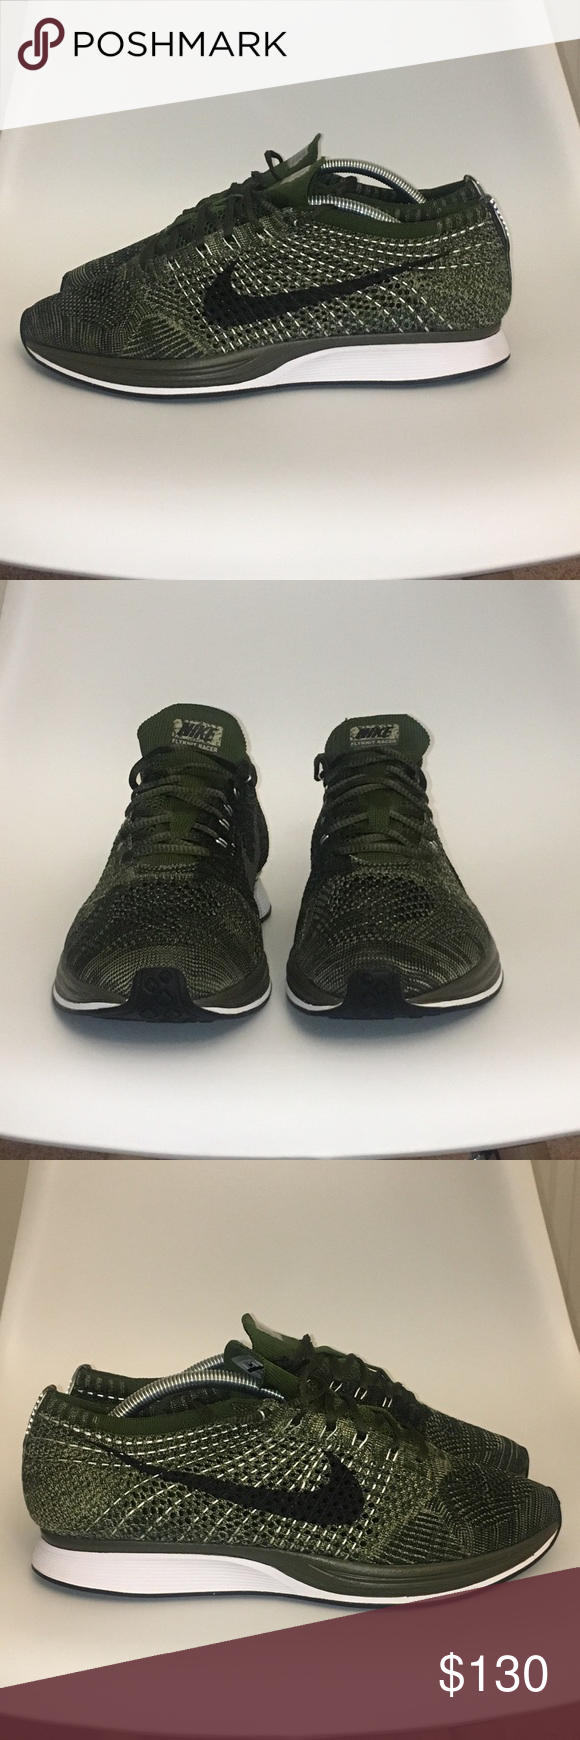 """e5e477be94f4 Nike Flyknit Racer """"Rough Green"""" - Nike Flyknit Racer. - """"Rough green"""" olive  green - Men s Size 10 - Used - Great condition - Price is firm Nike Shoes  ..."""